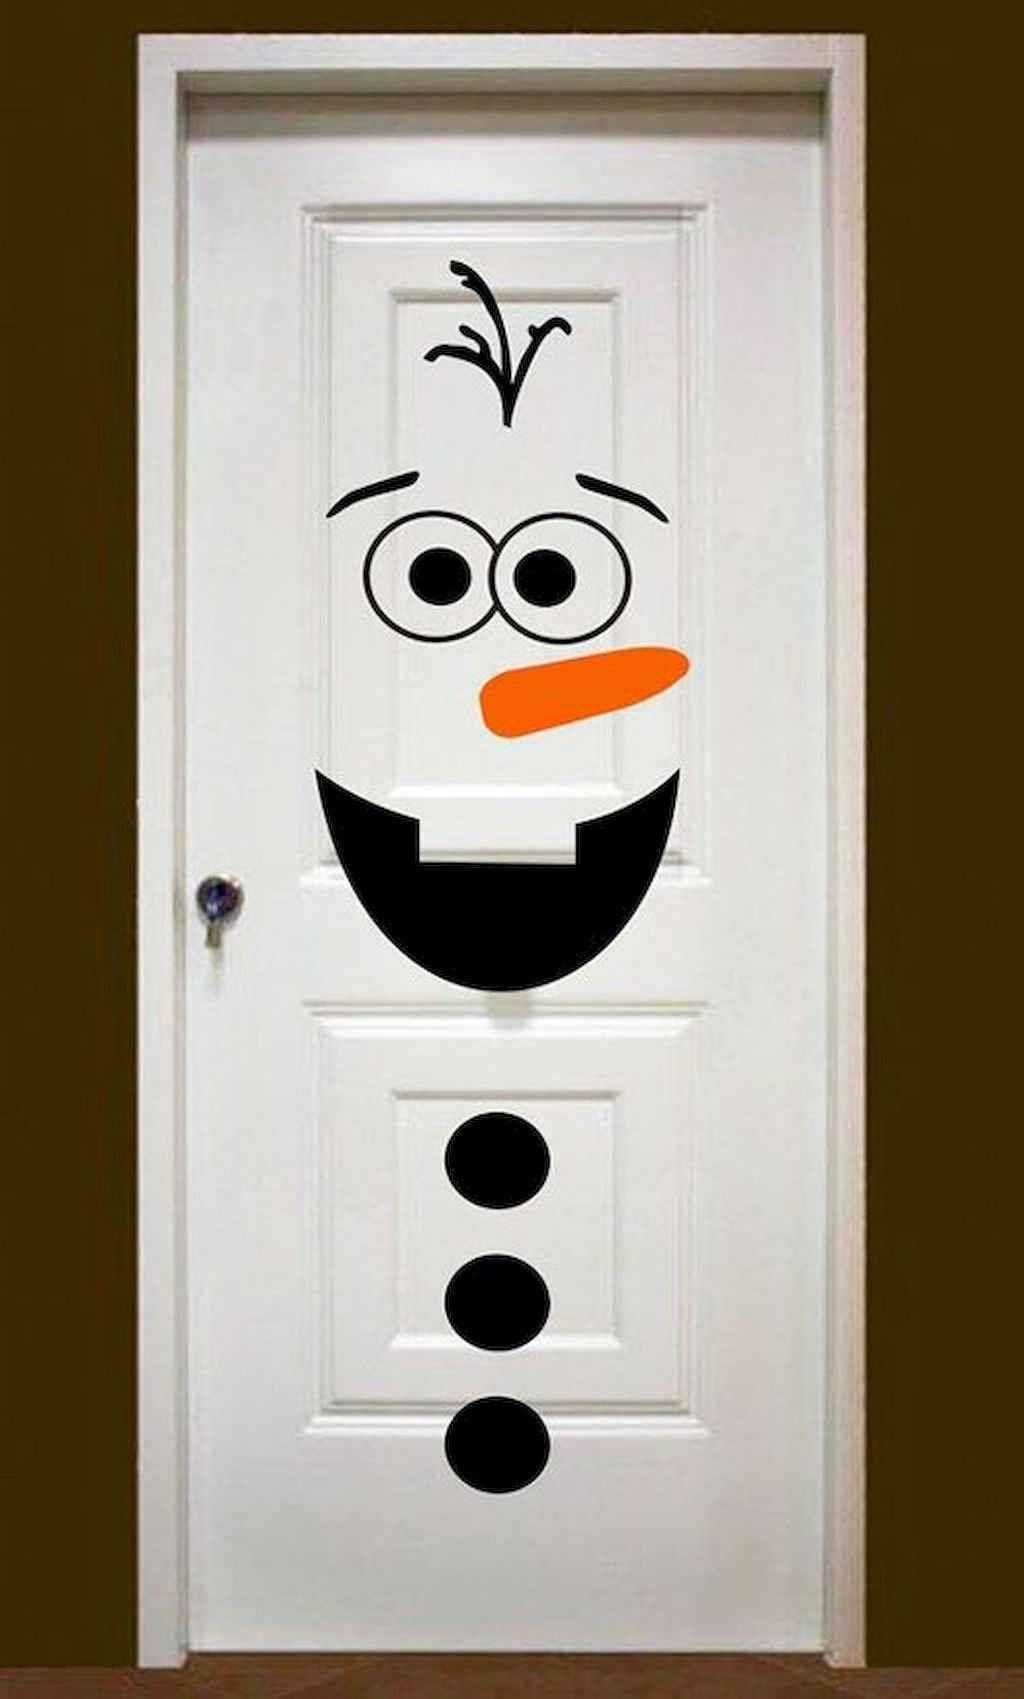 50 Simple Diy Christmas Door Decorations For Home And School 2